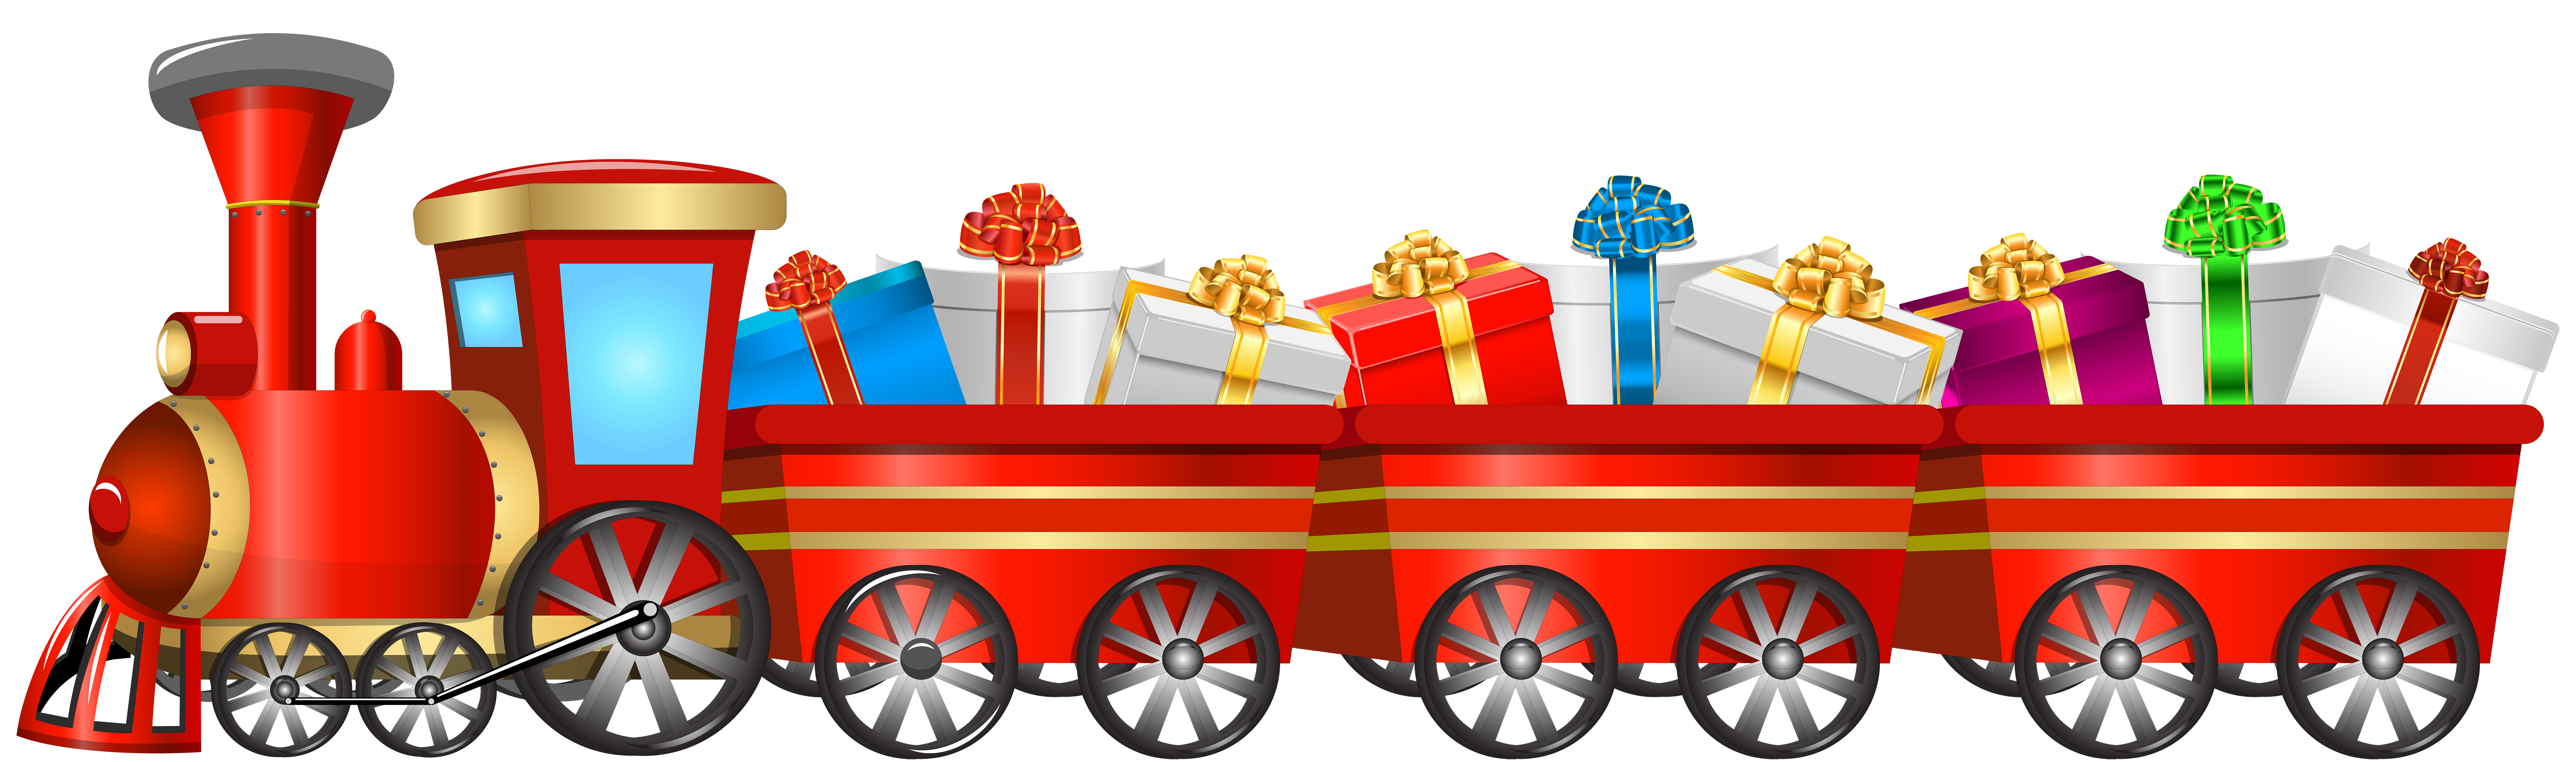 Transparent train christmas. Png clip art image